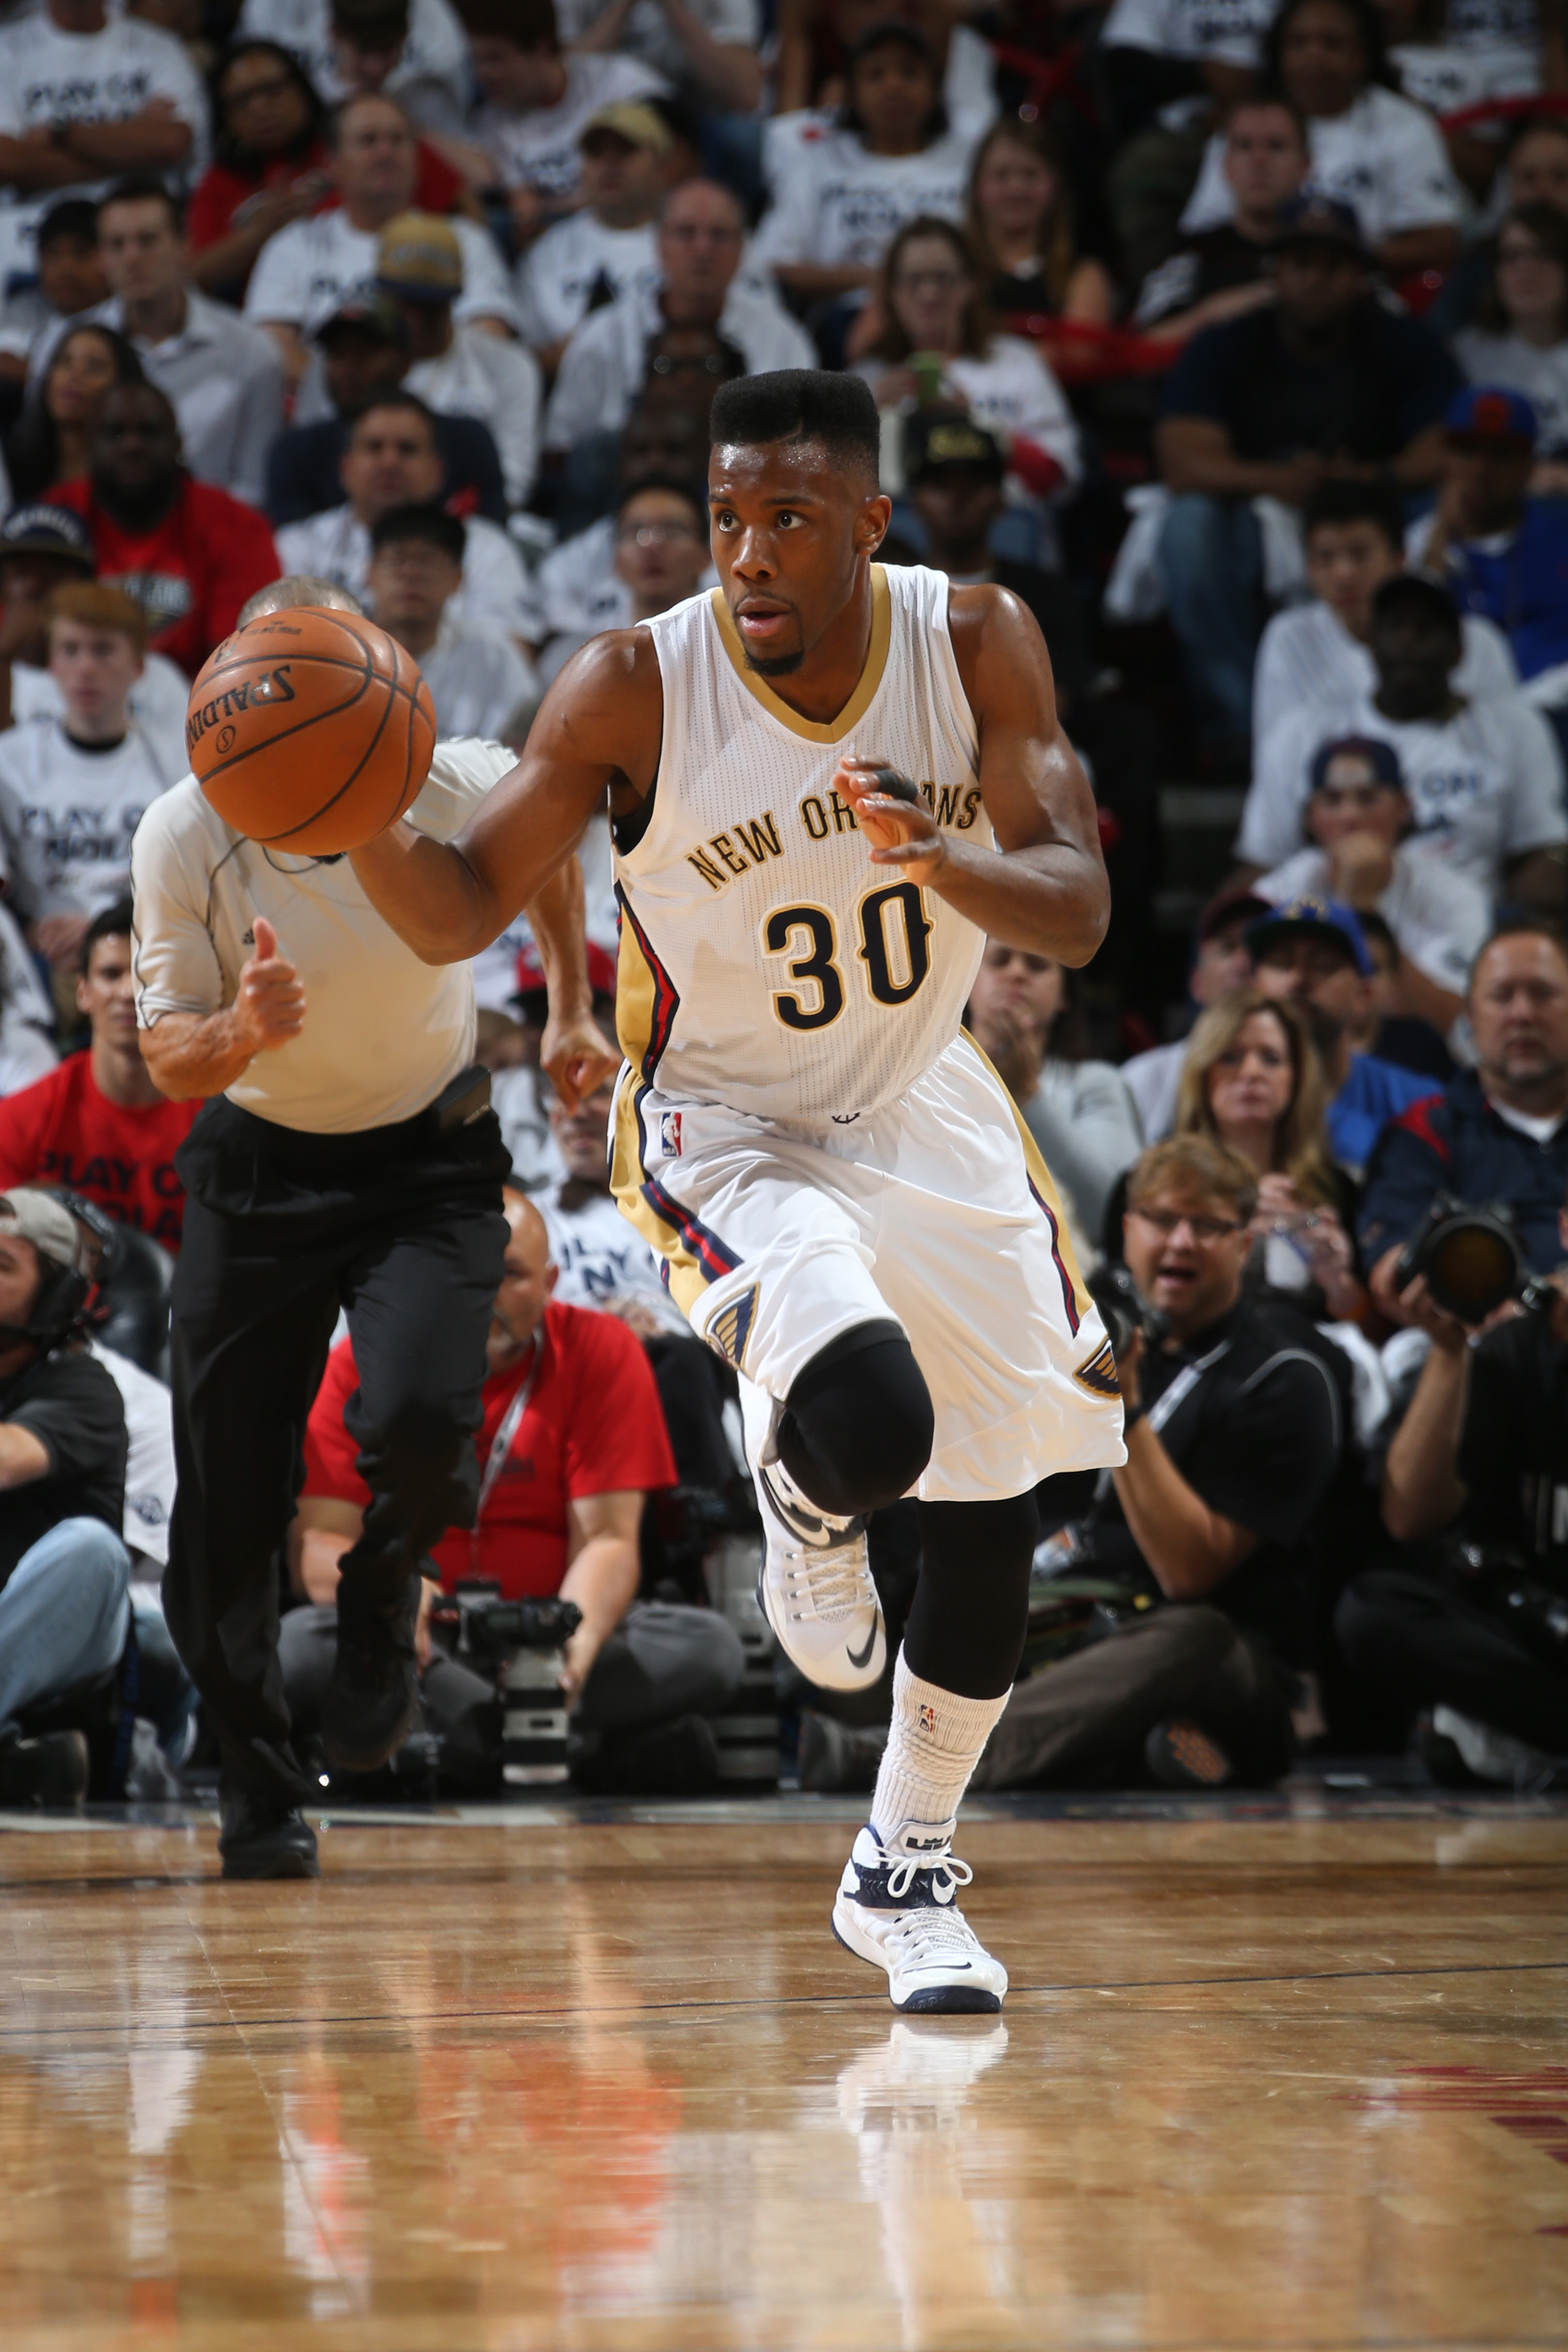 NEW ORLEANS, LA - APRIL 25: Norris Cole #30 of the New Orleans Pelicans drives to the basket against the Golden State Warriors during Game Four of the Western Conference Quarterfinals during the 2015 NBA Playoffs on April 25, 2015 at the Smoothie King Cen